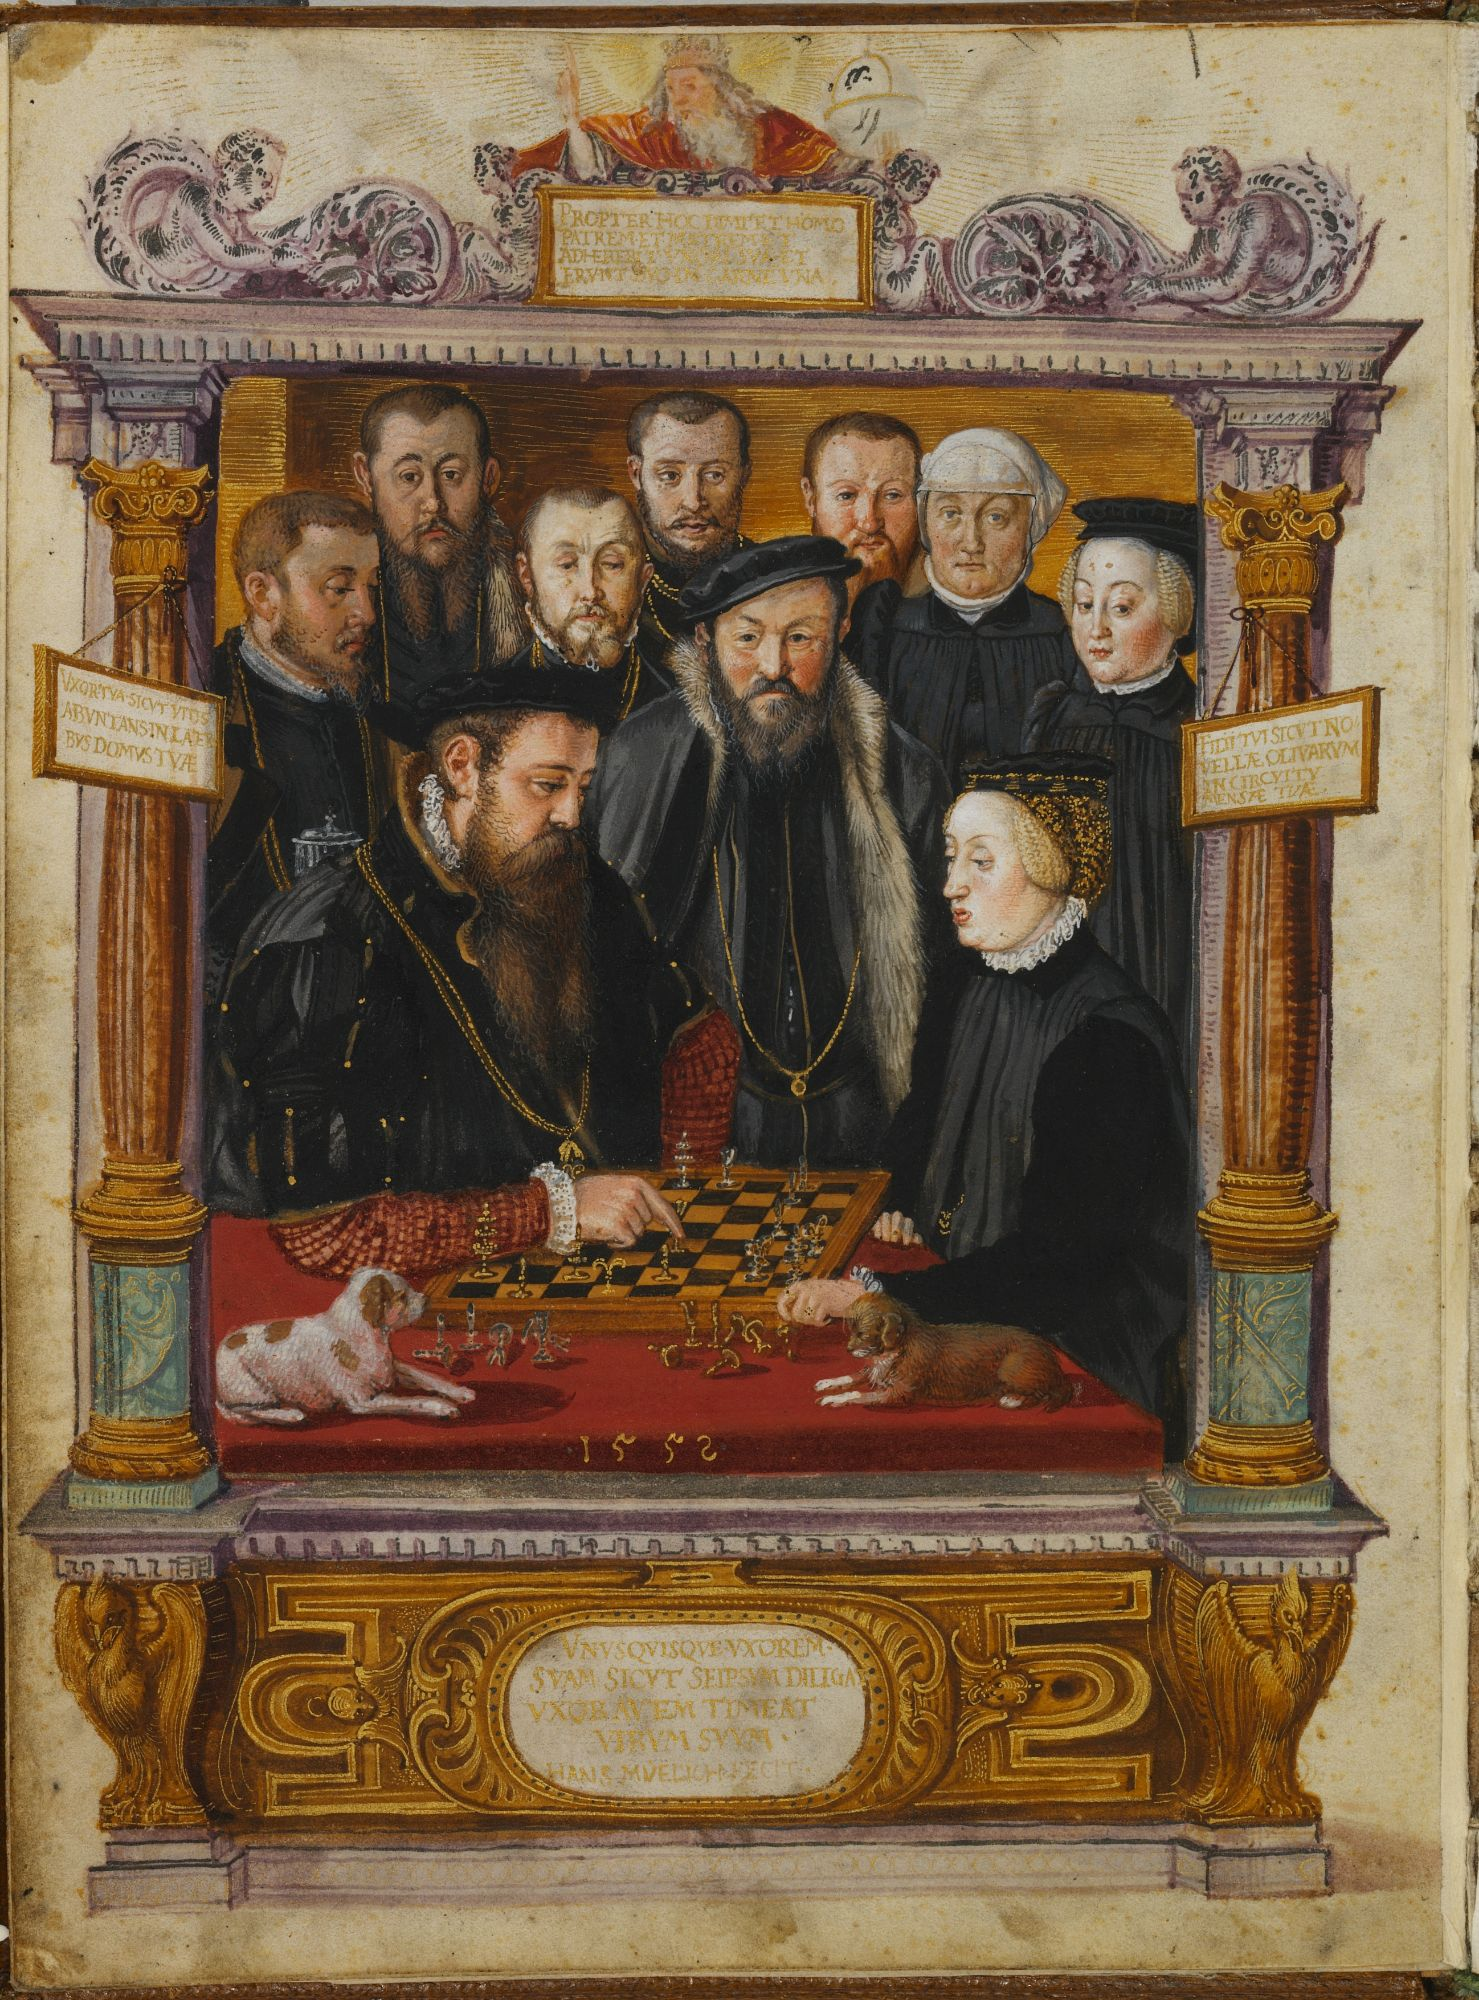 Duke Albrecht V and Duchess Anna of Bavaria playing chess, from The Jewel Book of 1552